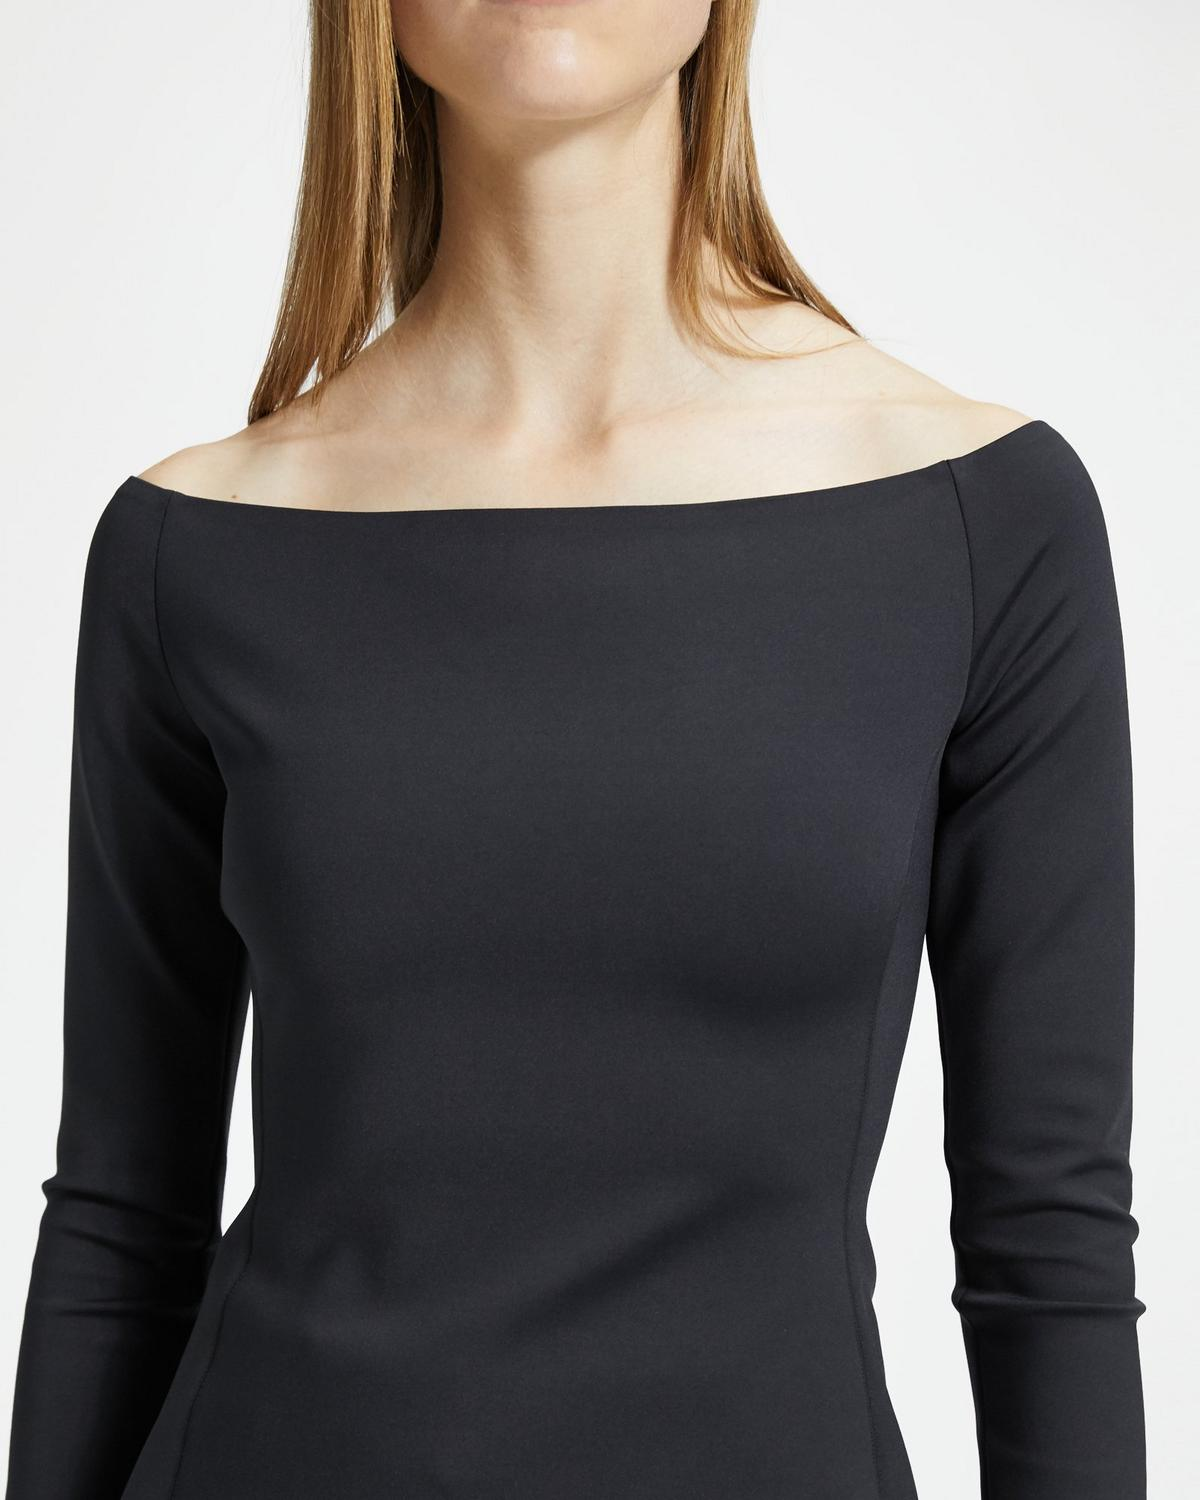 Mod Knit Off-The-Shoulder Fitted Top